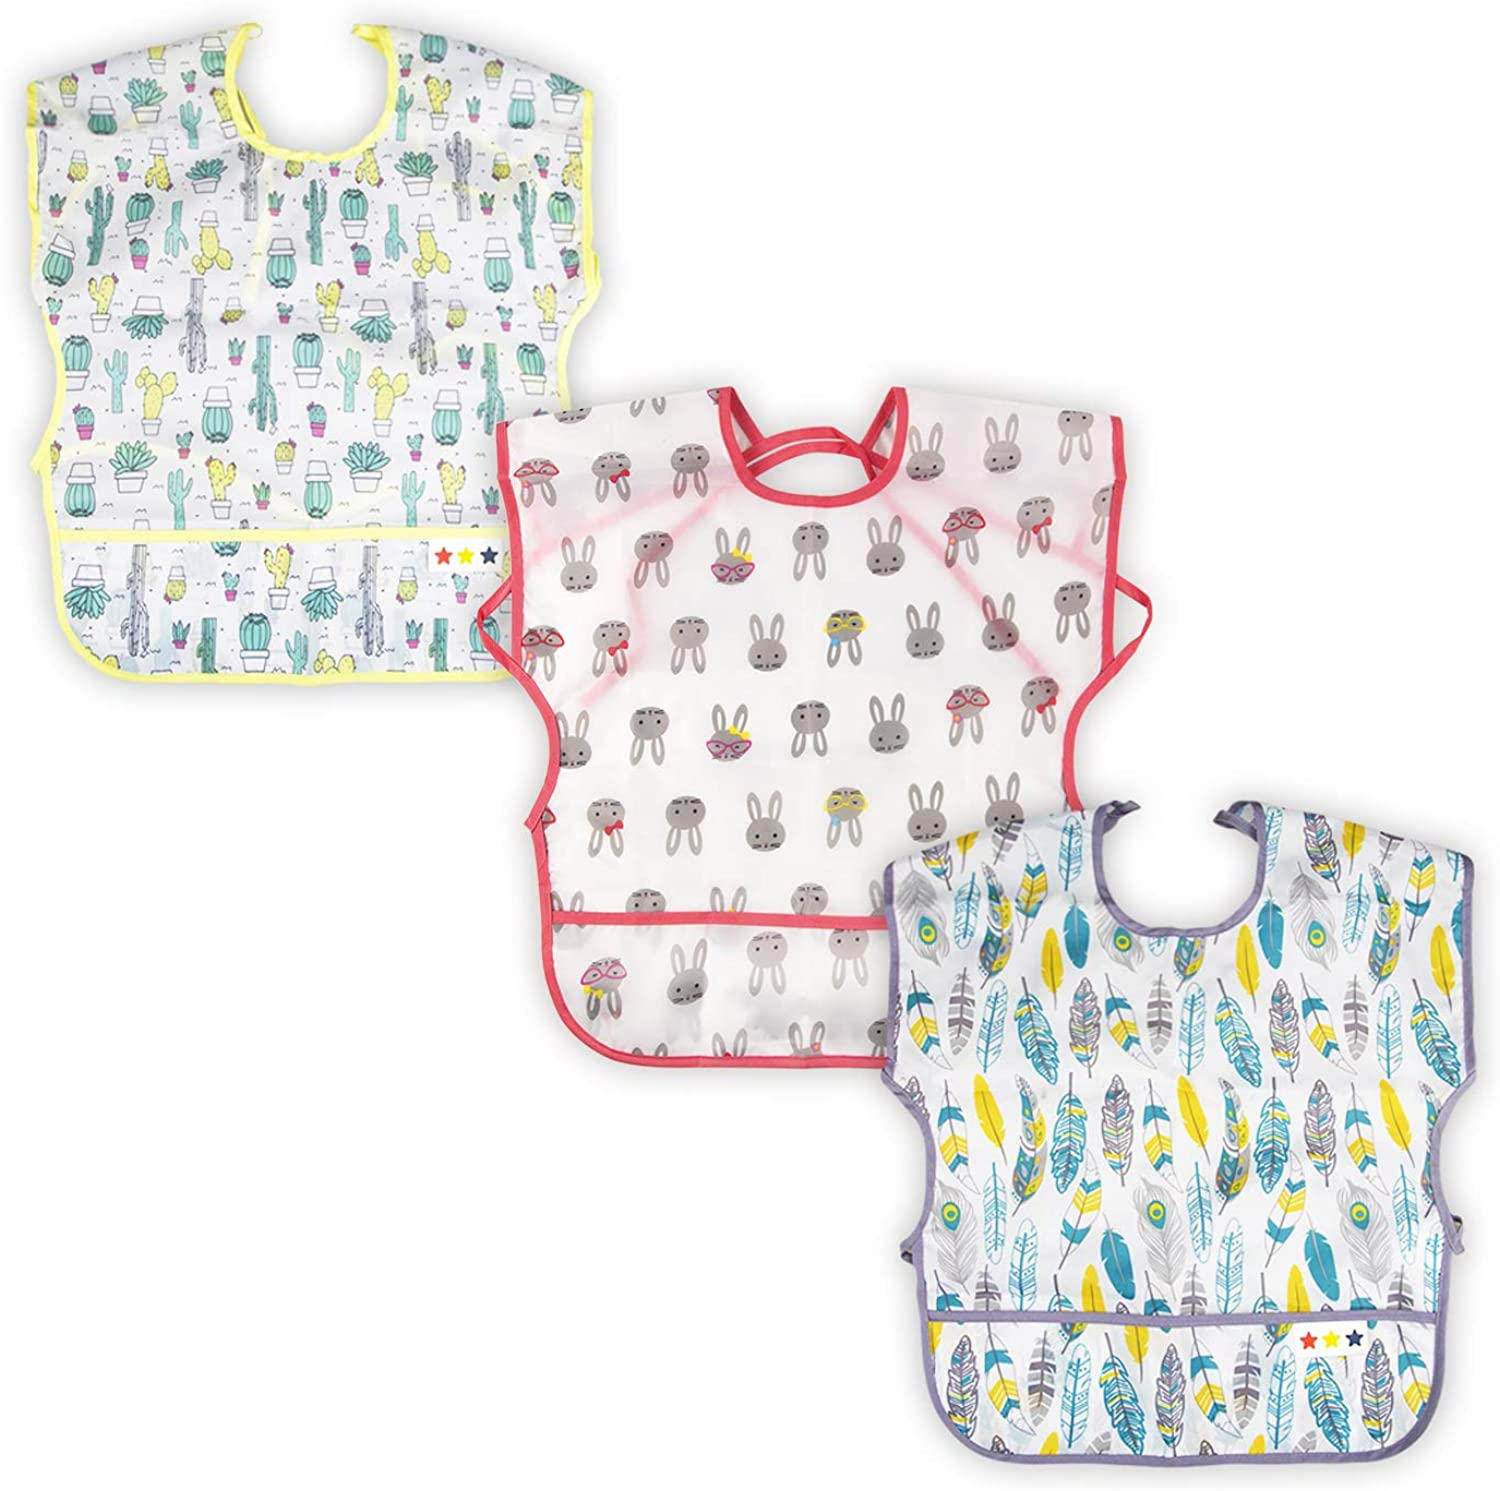 3 Pack Baby & Toddler Waterproof Bib Short Sleeve Feeding Bibs Smock Set for Girl Boy with Pocket & Food Crumb Catcher | Stain and Odor Resistance | 12 Months - 36 Months